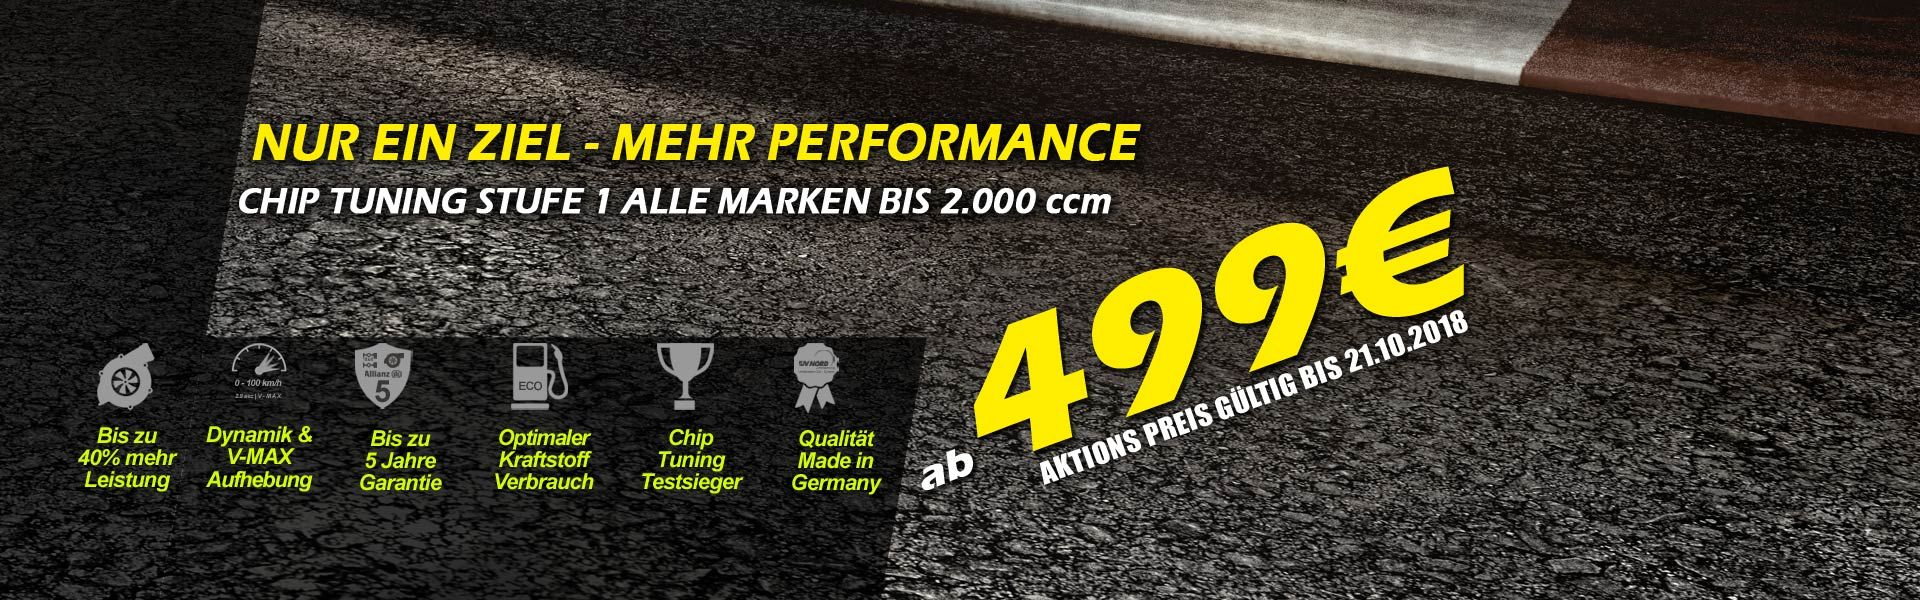 CHIP TUNING LEVEL 1 от 499 € *